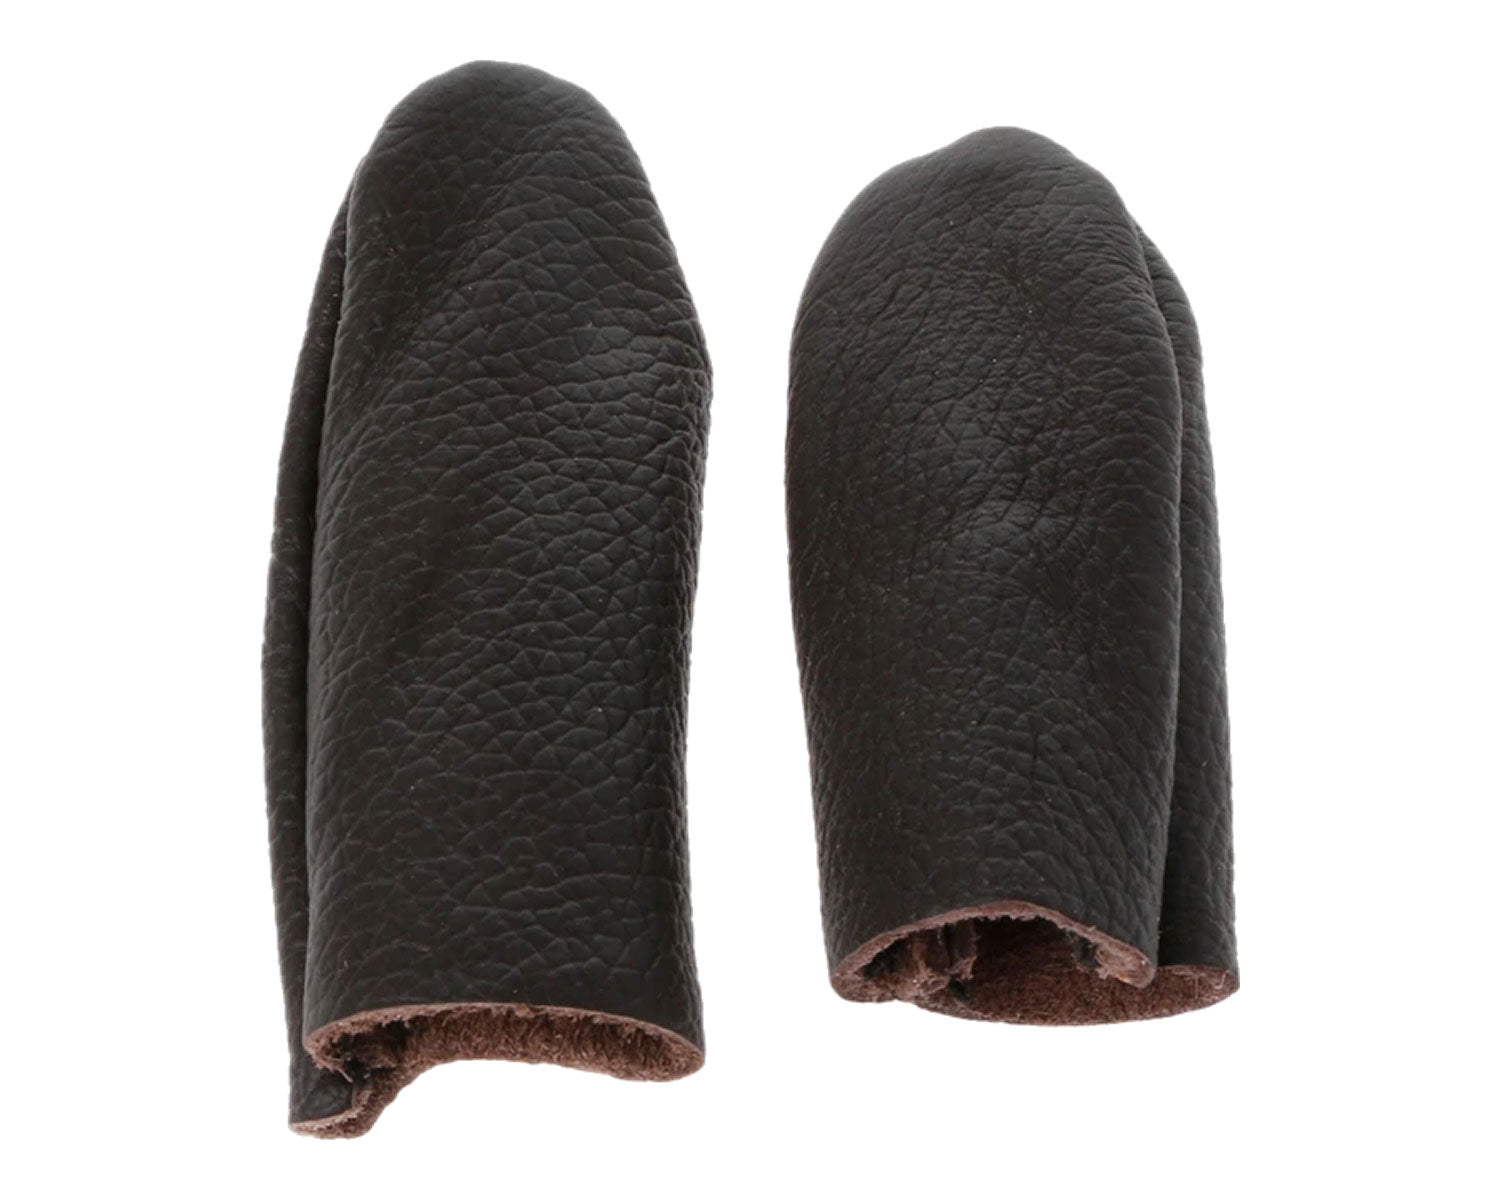 Needle Felting Finger Protectors, Finger Guards, Leather - 5 Pack